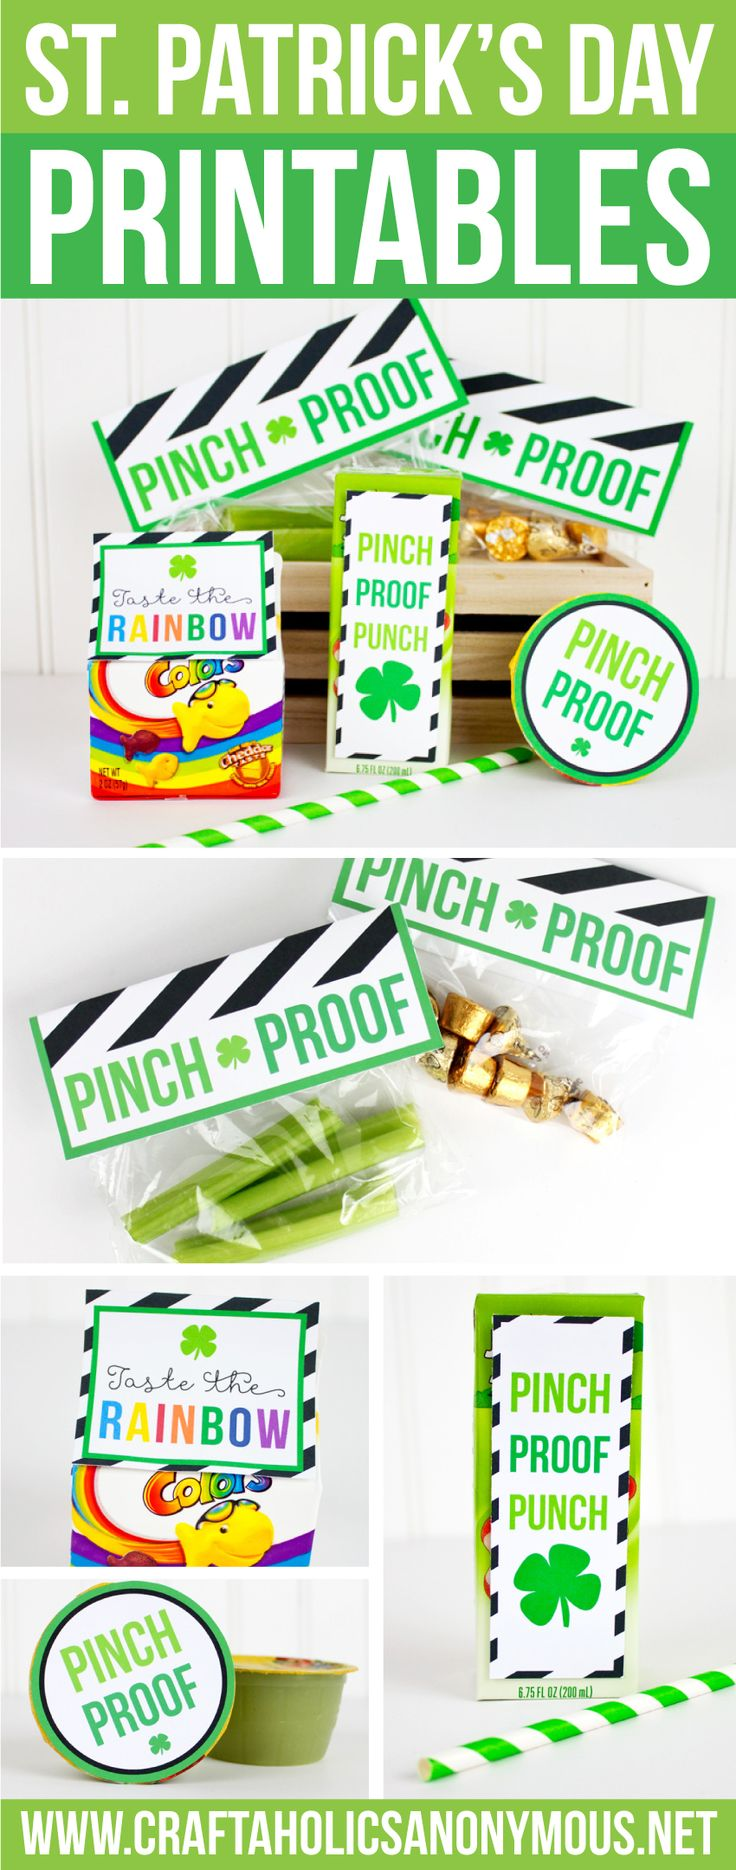 Craftaholics Anonymous® | St. Patrick's Day Printables